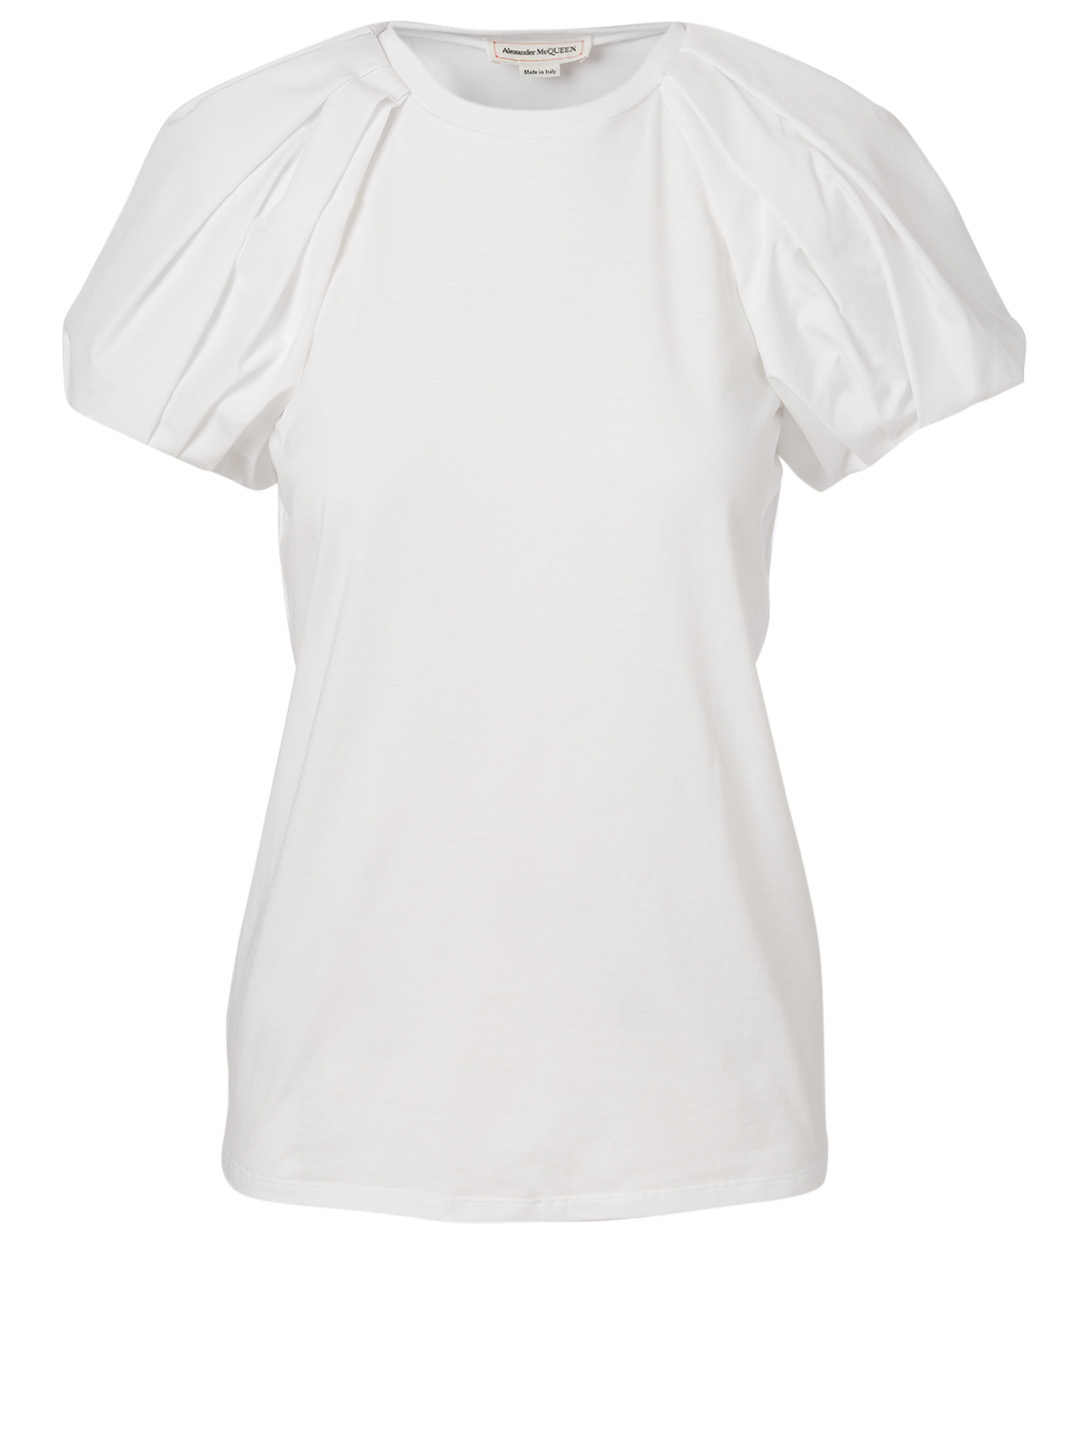 ALEXANDER MCQUEEN Cotton Puff-Sleeve T-Shirt Women's White